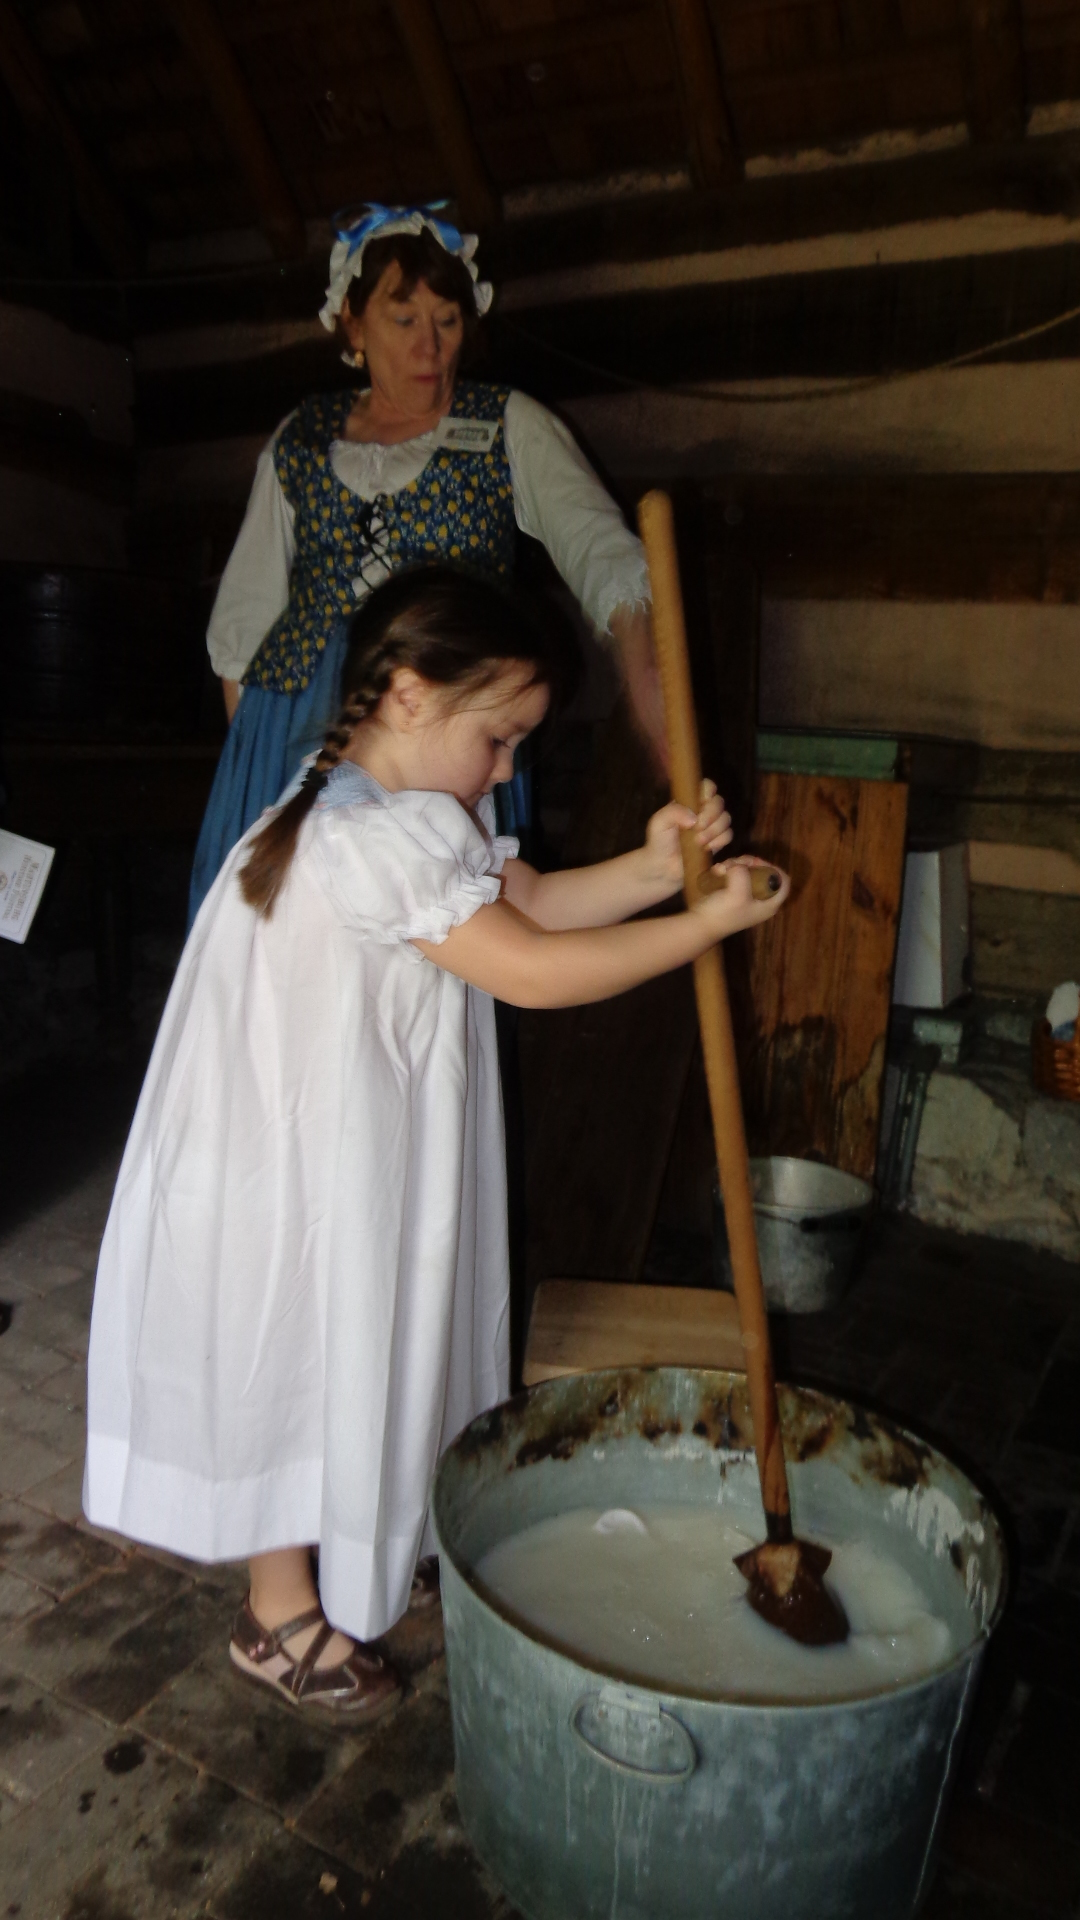 Doing laundry at the Adam Stephen House during Heritage Days